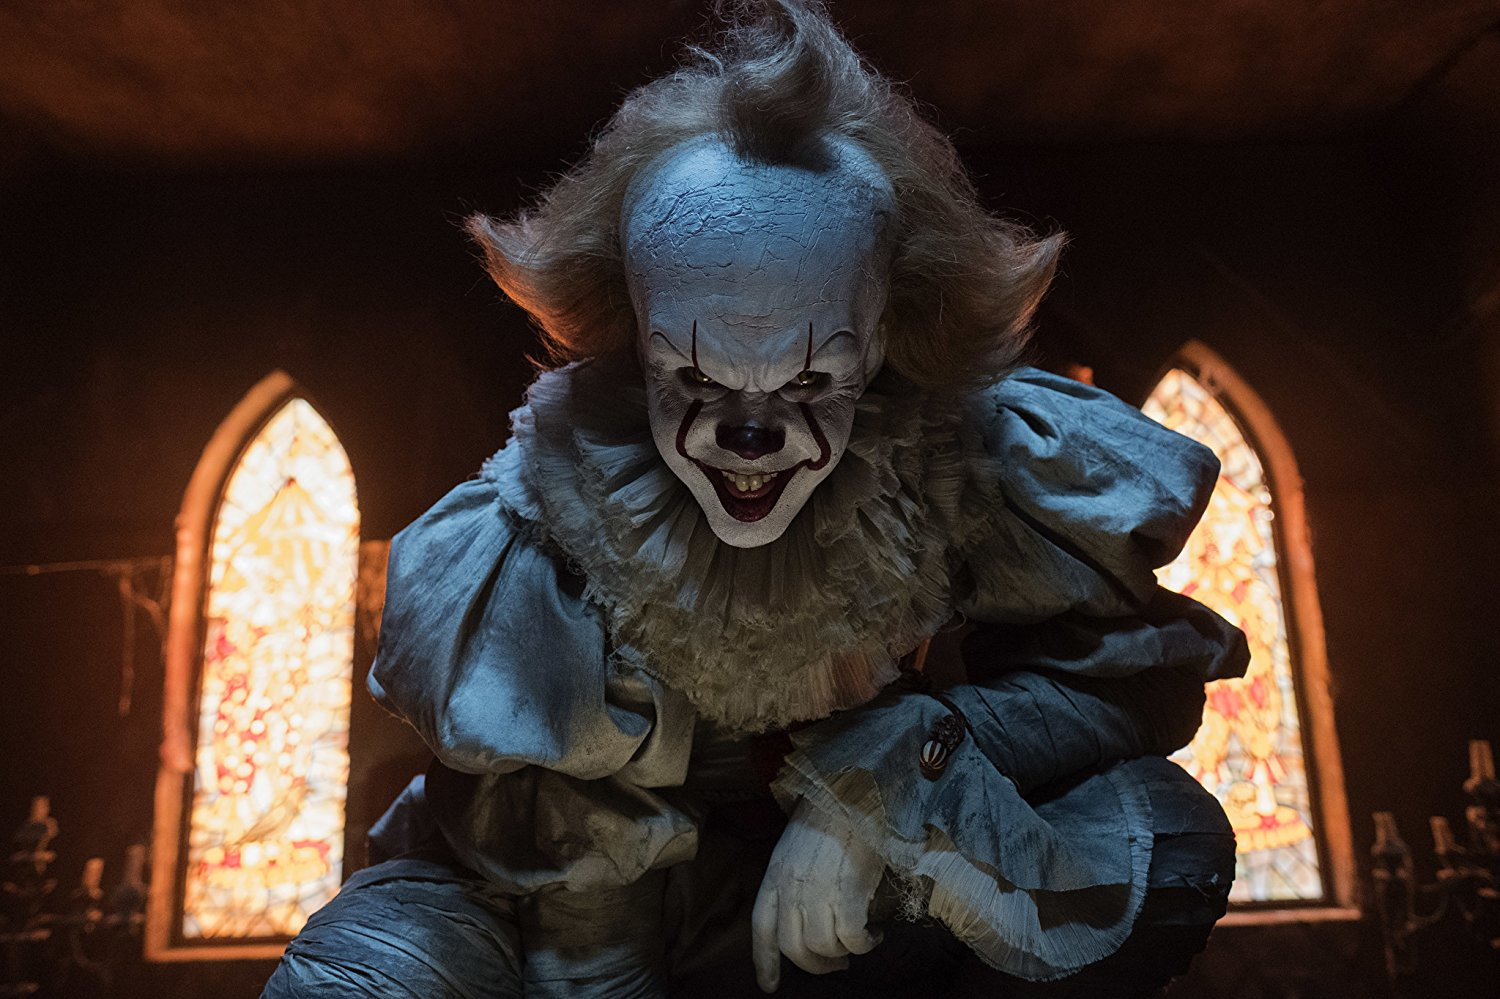 Is 'It' going to scare the sh*t out of you?